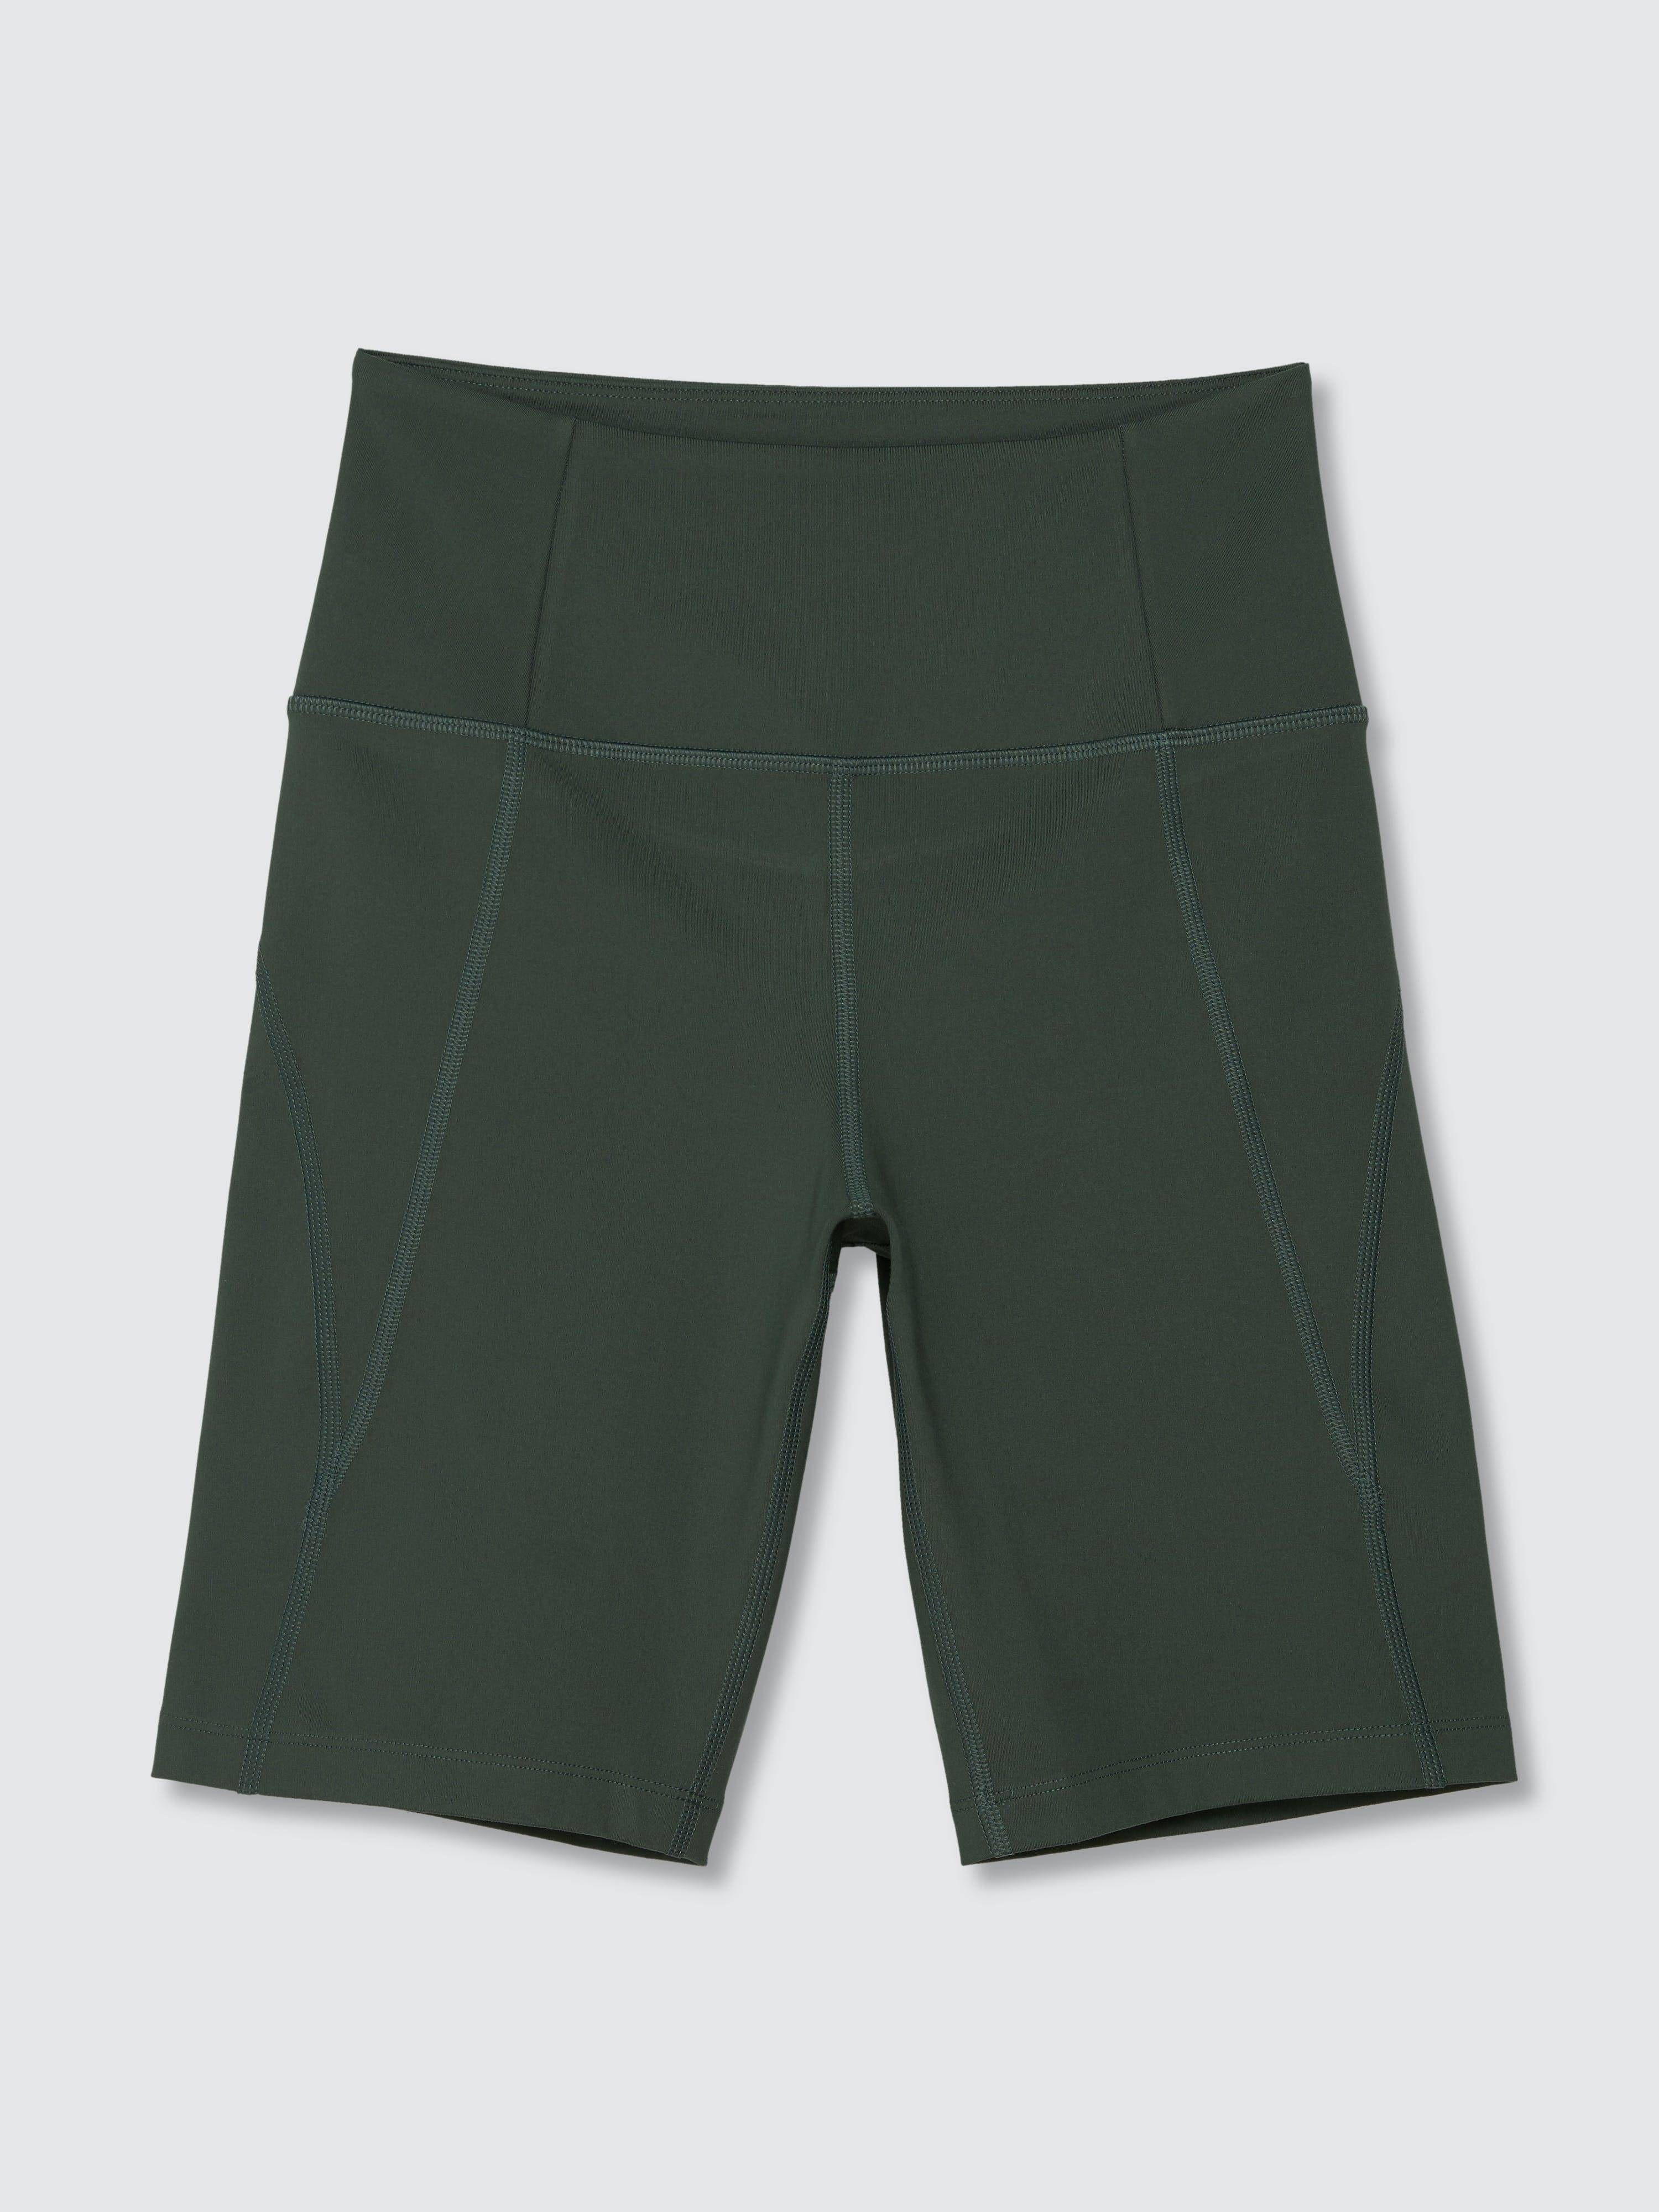 Girlfriend Collective High-Rise Bike Short - XL - Also in: L, M, XS, S  - Grey